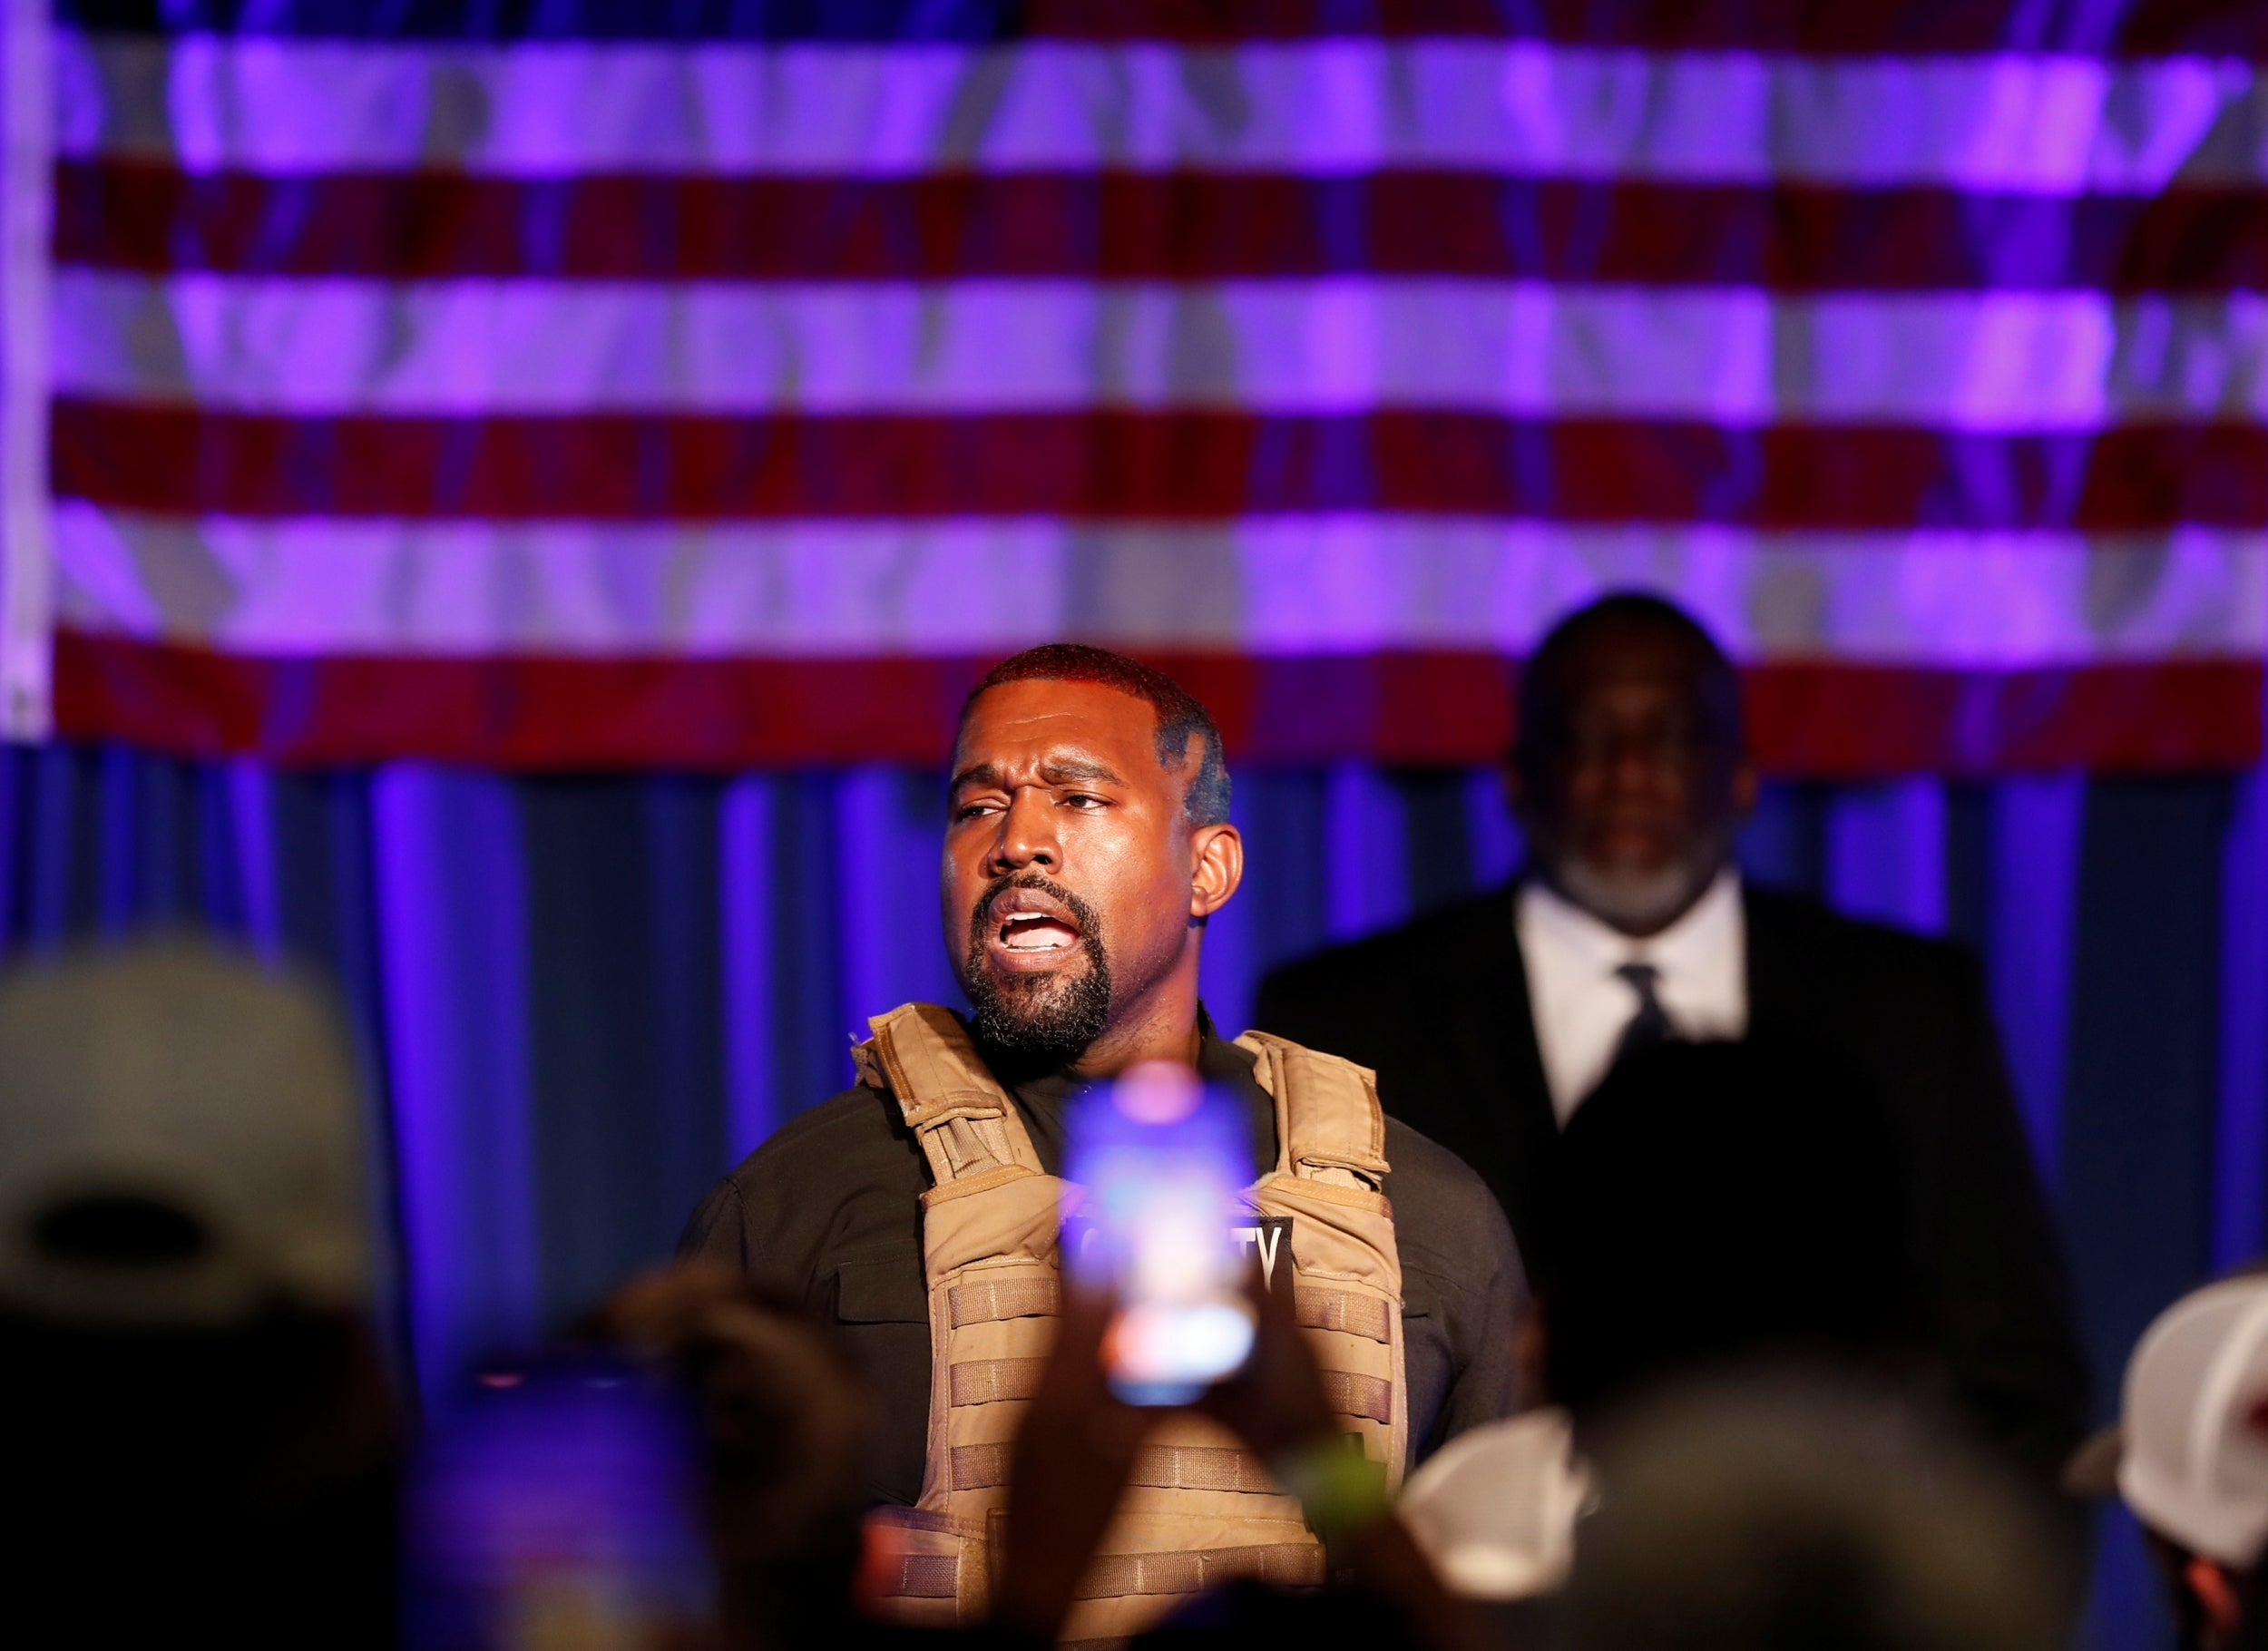 Kanye West 2020 Rally Rapper Launches Presidential Campaign With Tearful Abortion Rant The Independent The Independent